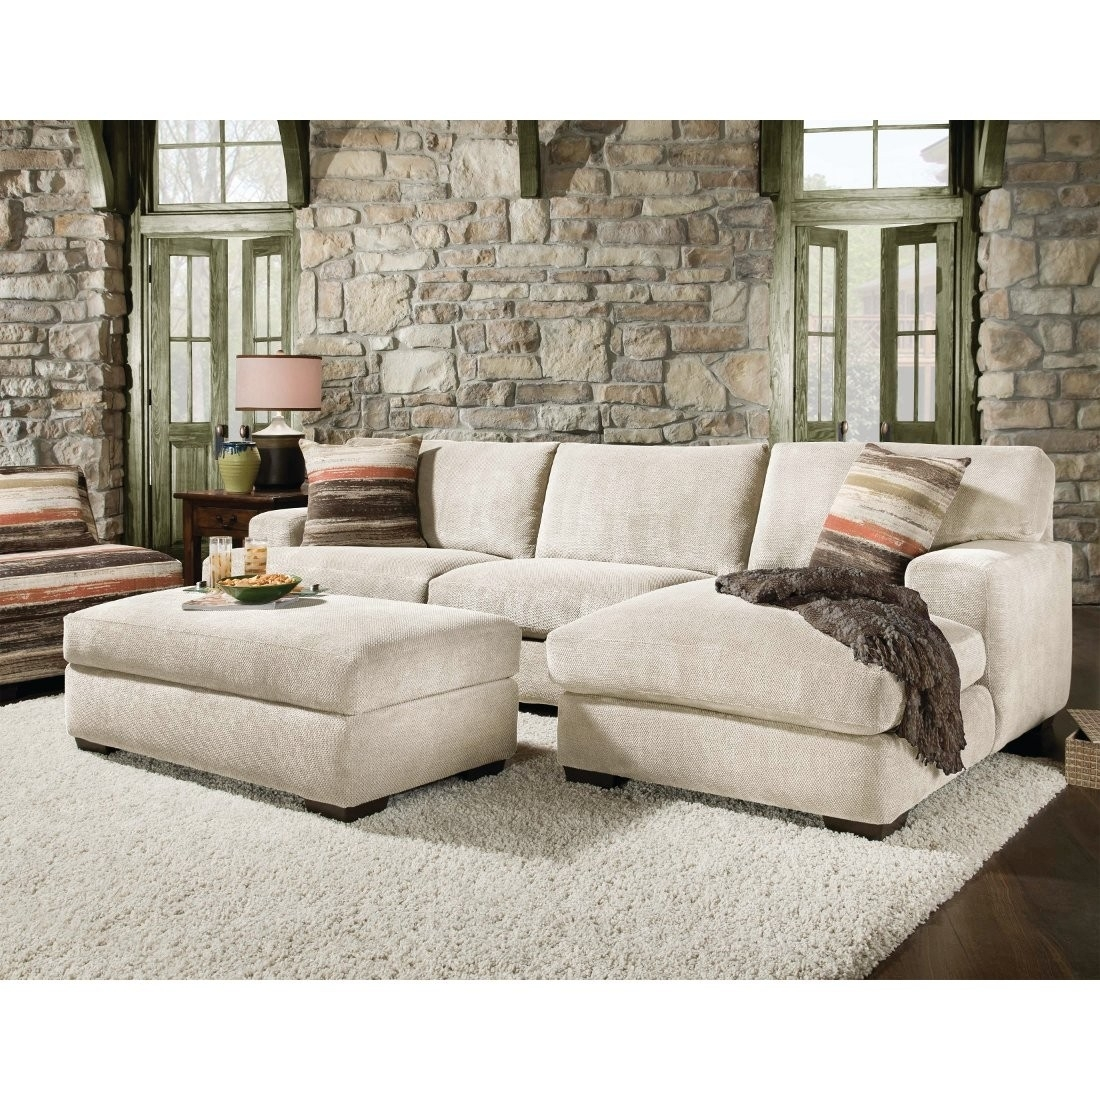 Beautiful Sectional Sofa With Chaise And Ottoman Pictures Throughout Small Sectional Sofas With Chaise And Ottoman (Image 2 of 10)